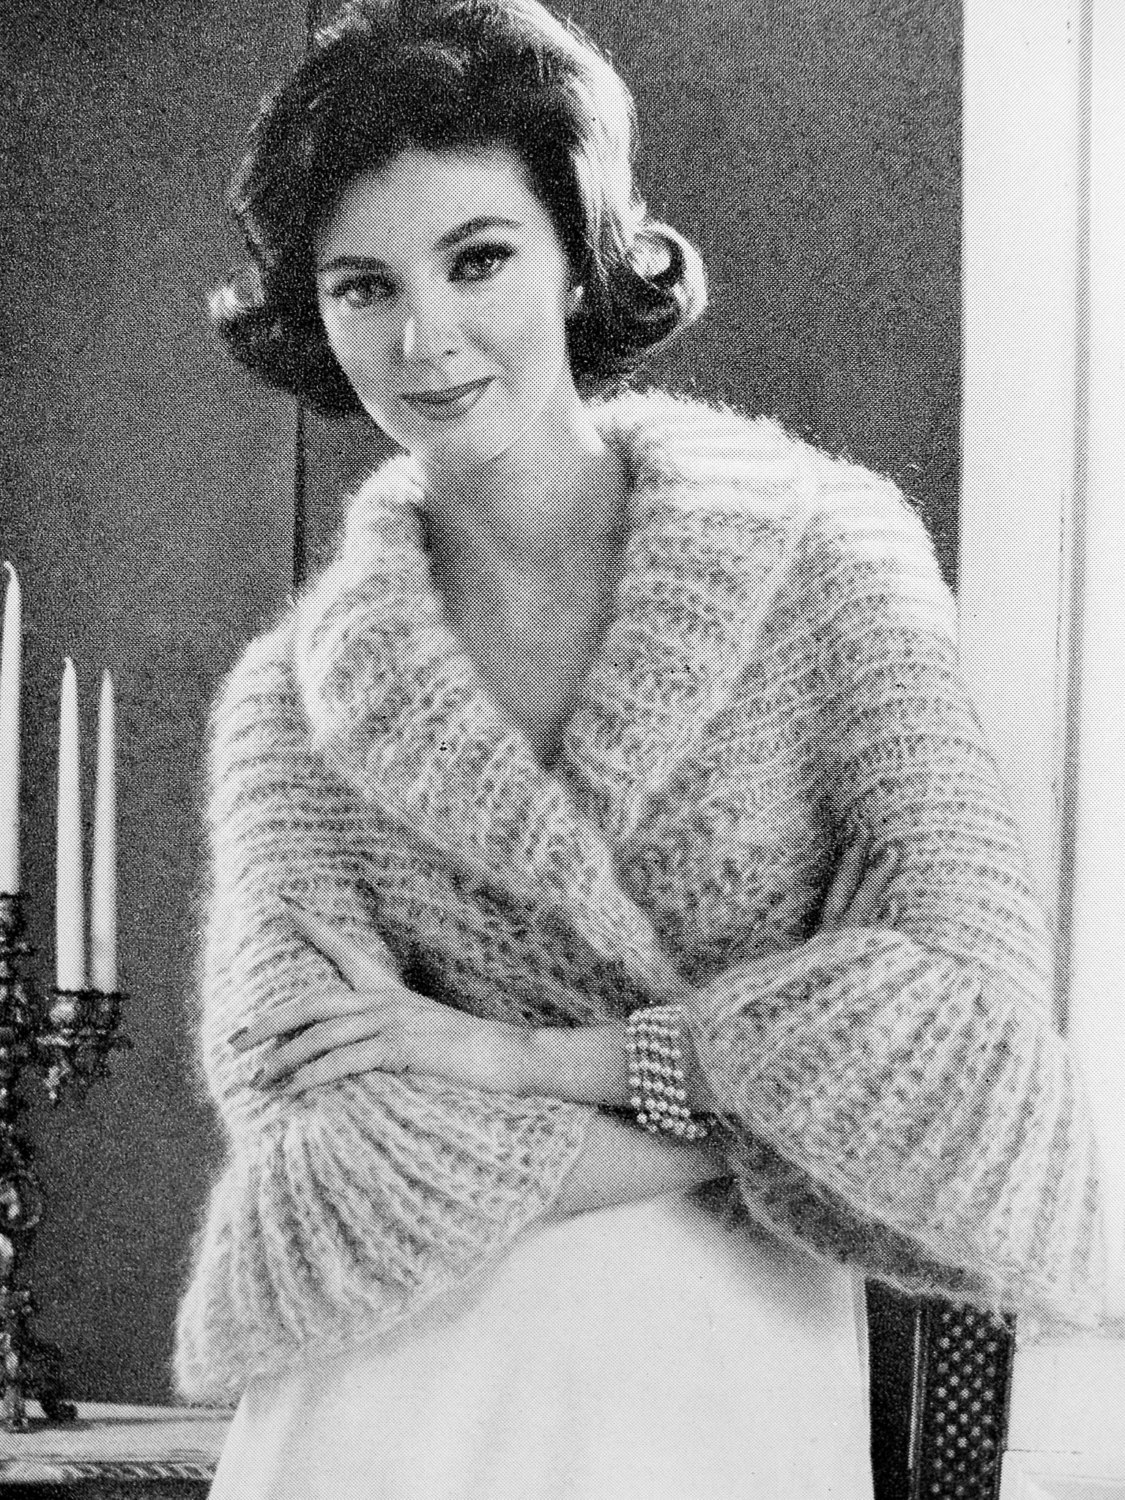 Sweater Jacket Knitting Pattern Instant Pdf Pattern 1960s Vintage Knitting Pattern Shrug Sweater Jacket Lovely Shawl Collar Bell Sleeves Day Or Evening Unique Knit Pattern